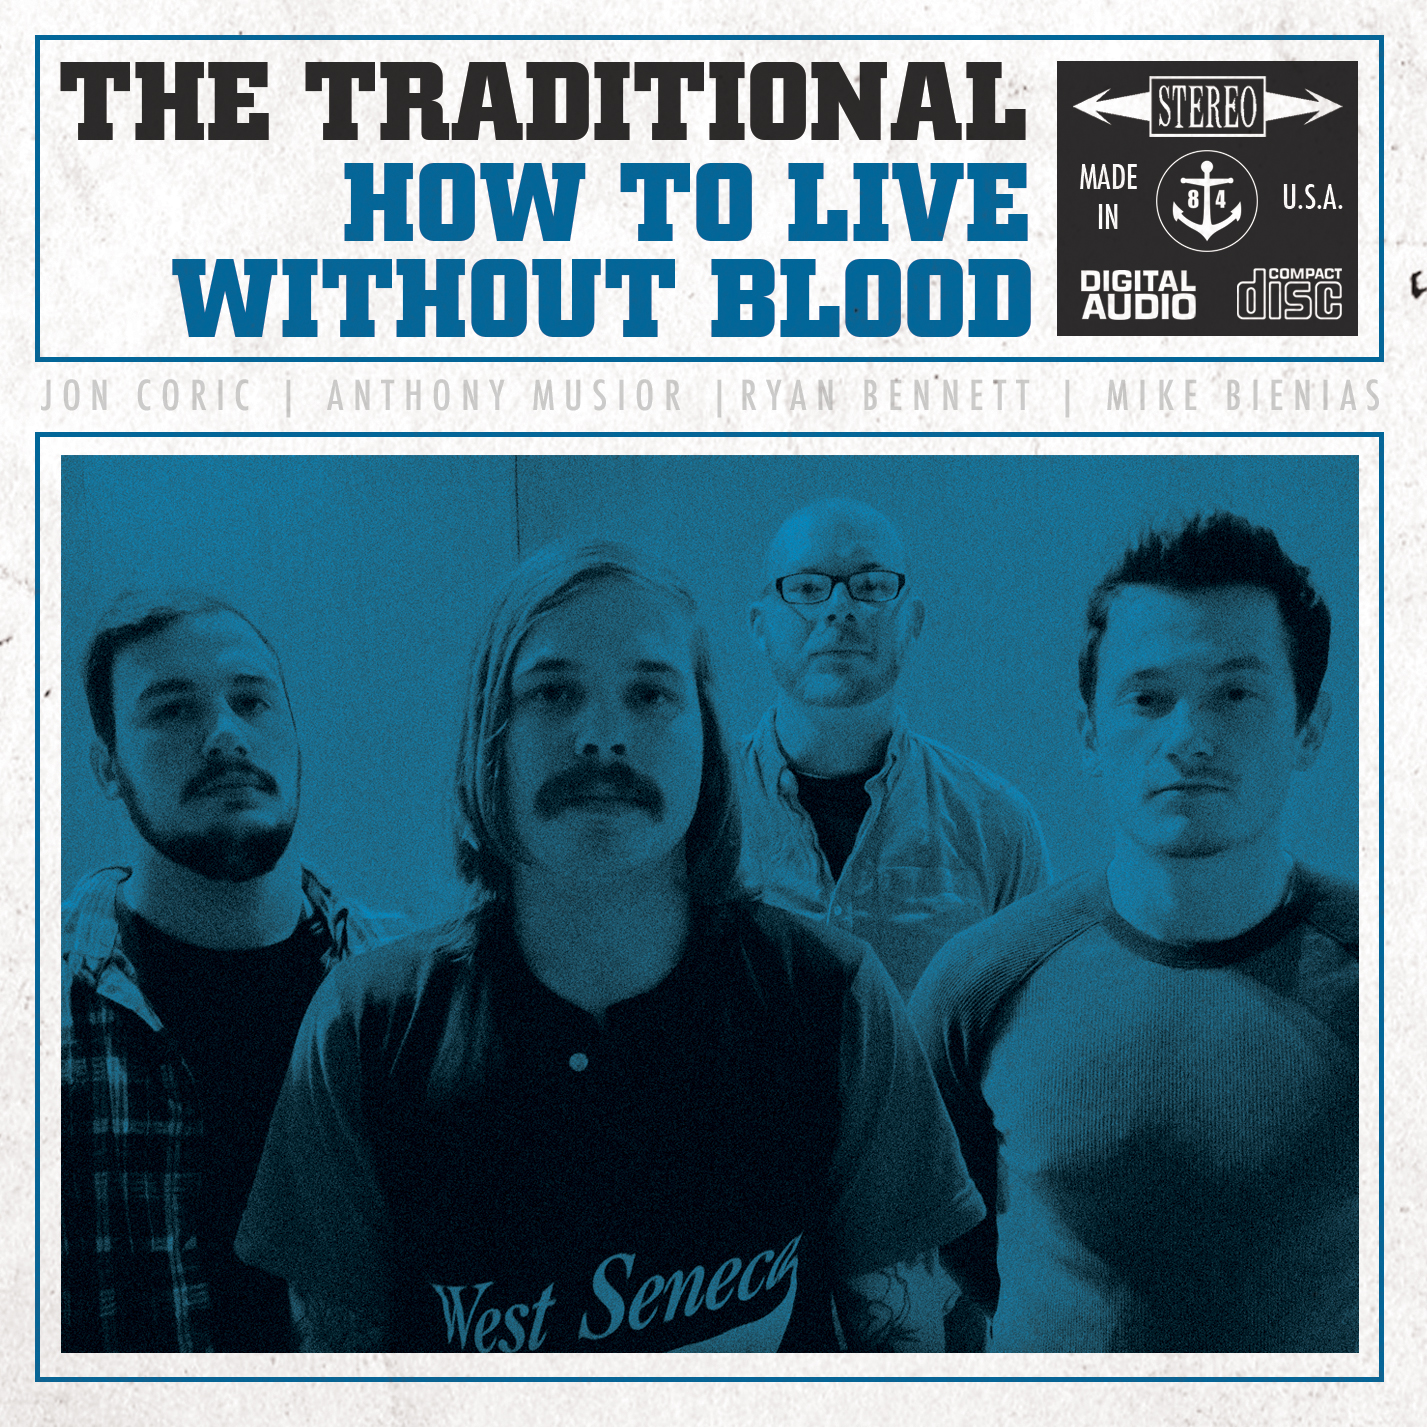 The Traditional - How To Live Without Blood (Vinyl & CD)